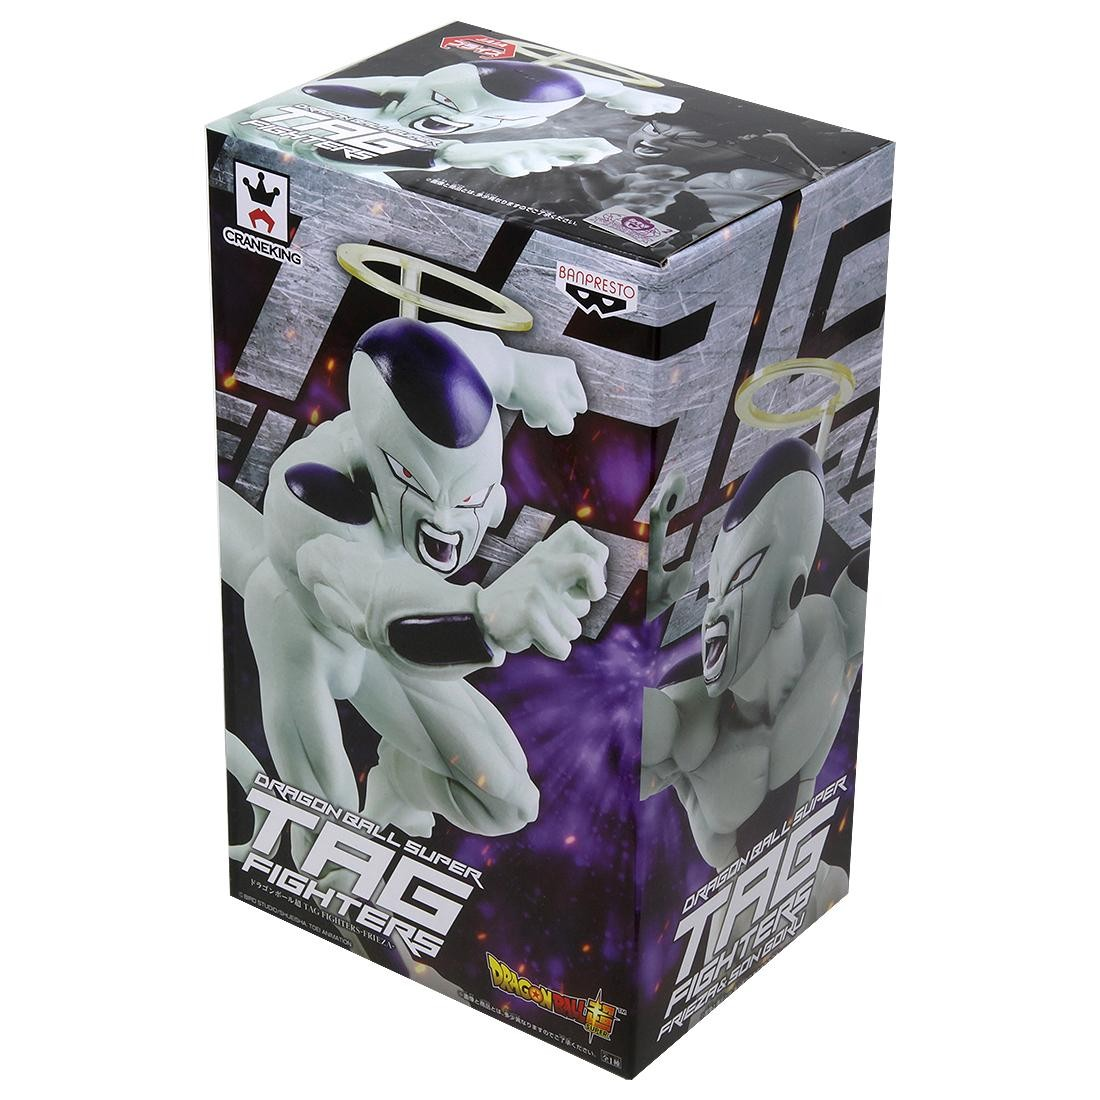 Dragon Ball Z DBZ Super Freeza Tag Fighters Action Figure 16CM Toy New in Box